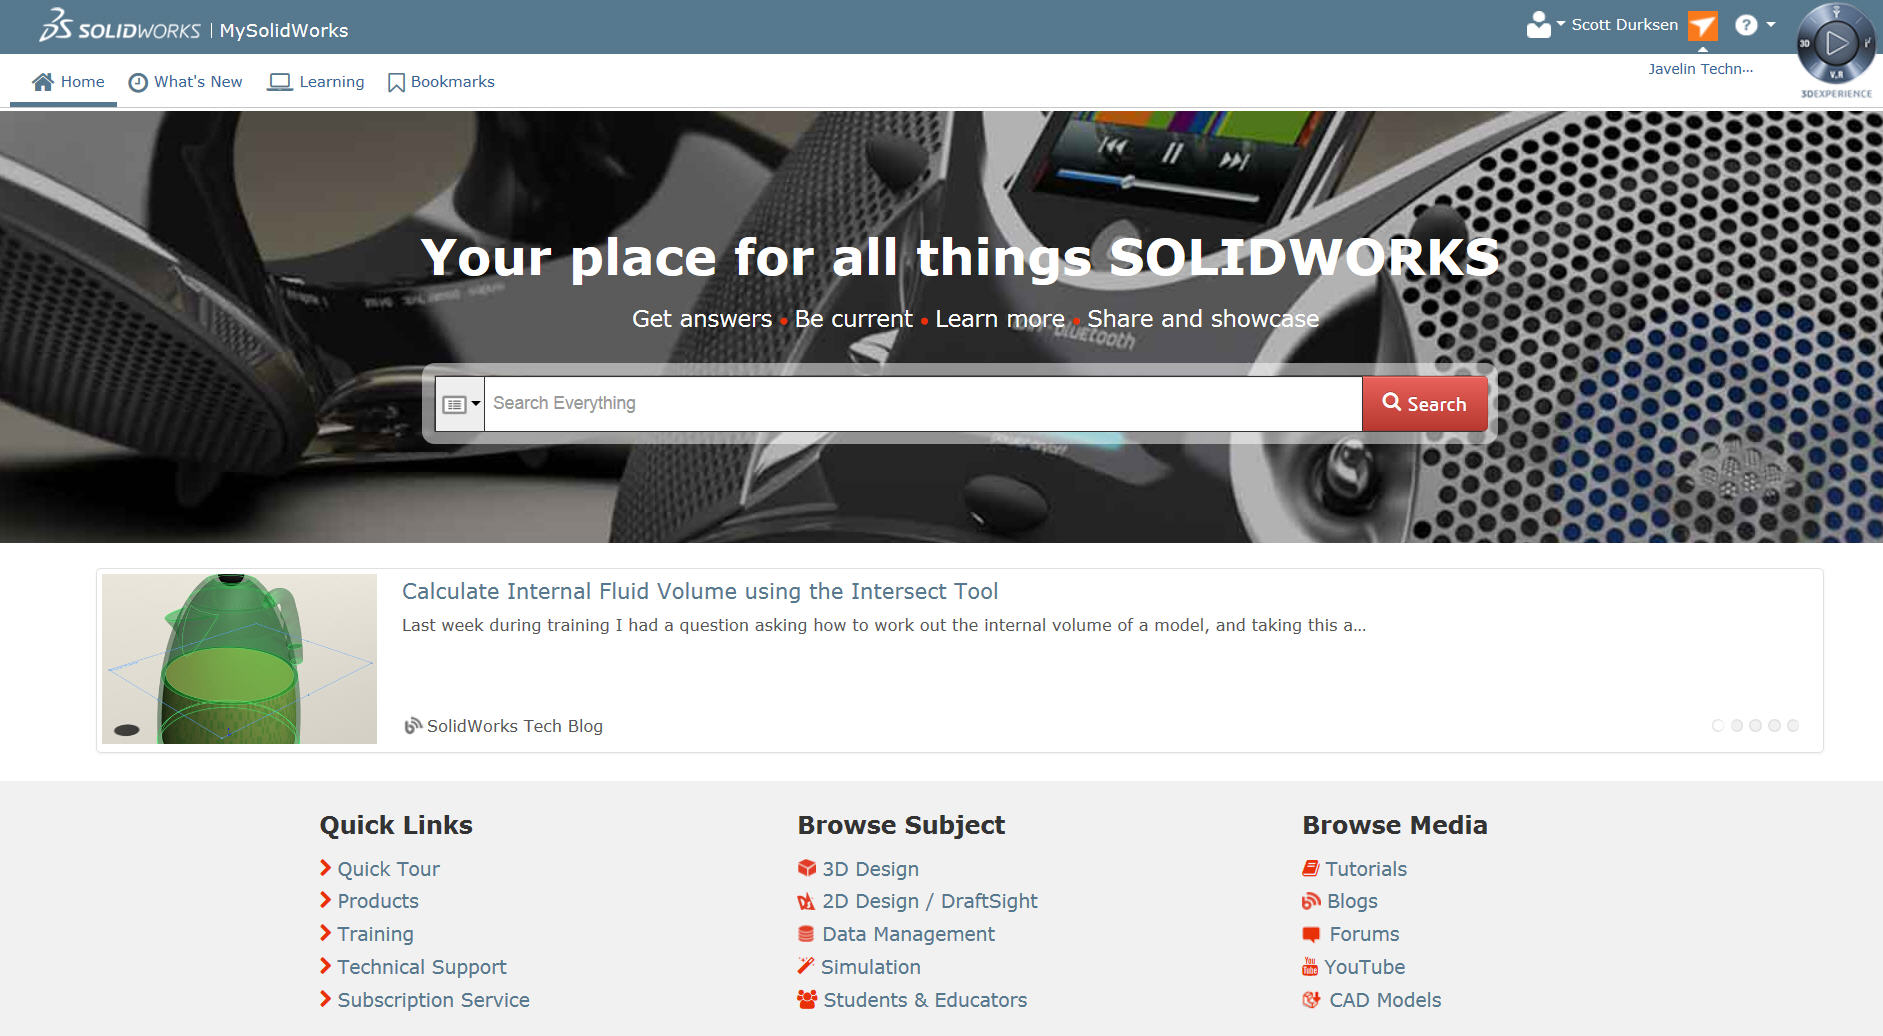 MySolidWorks Home Page